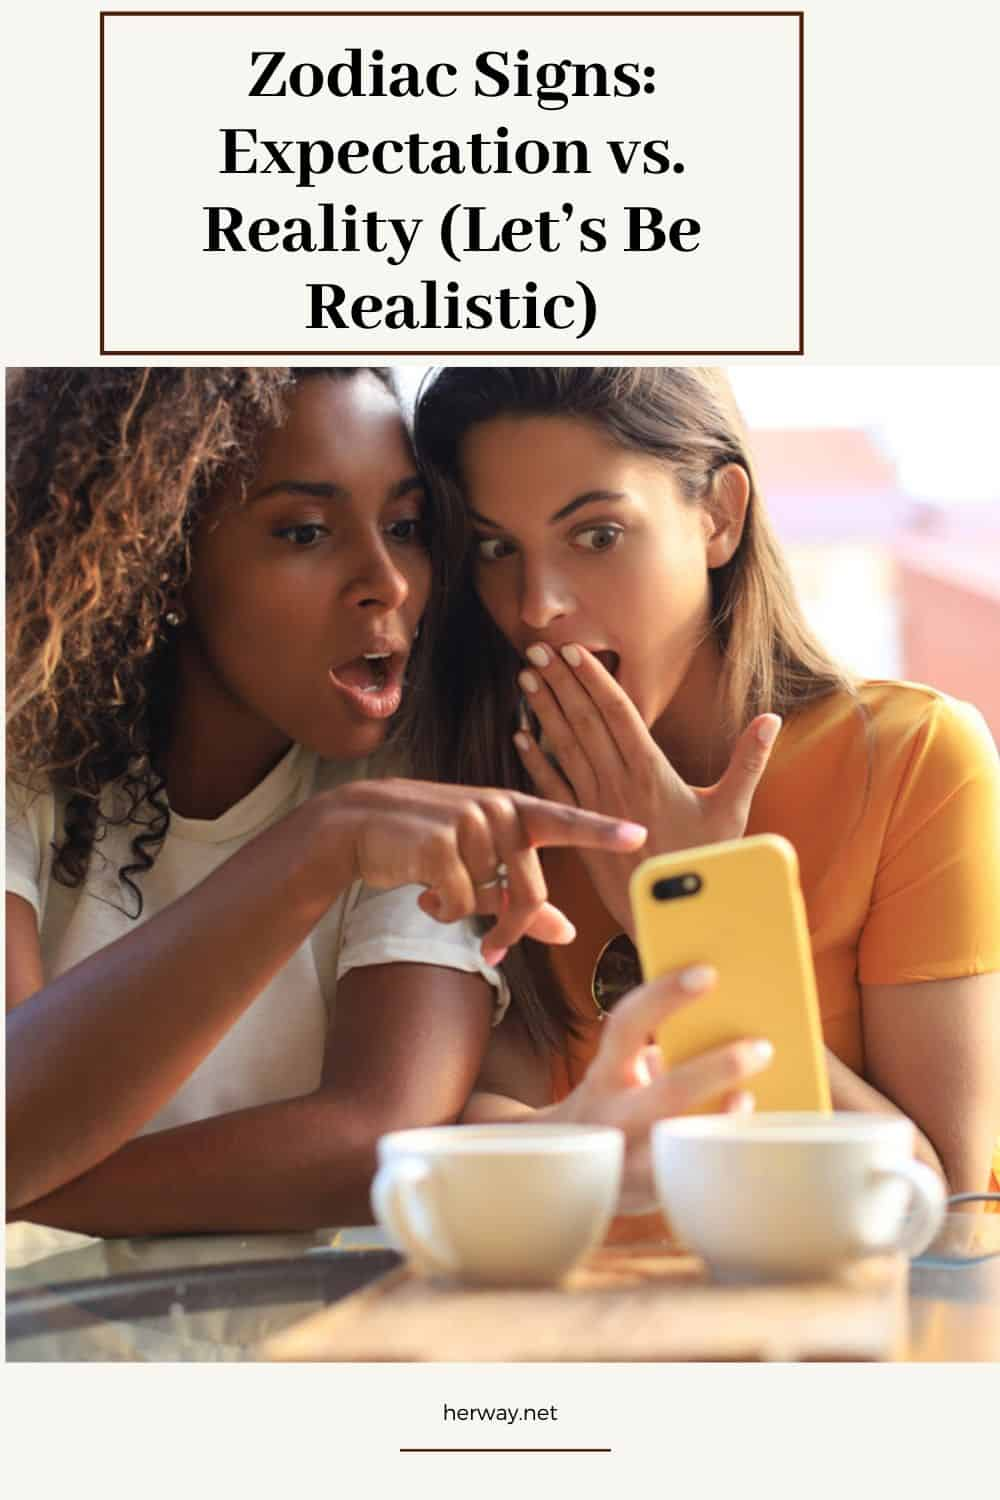 Zodiac Signs Expectation vs. Reality (Let's Be Realistic)